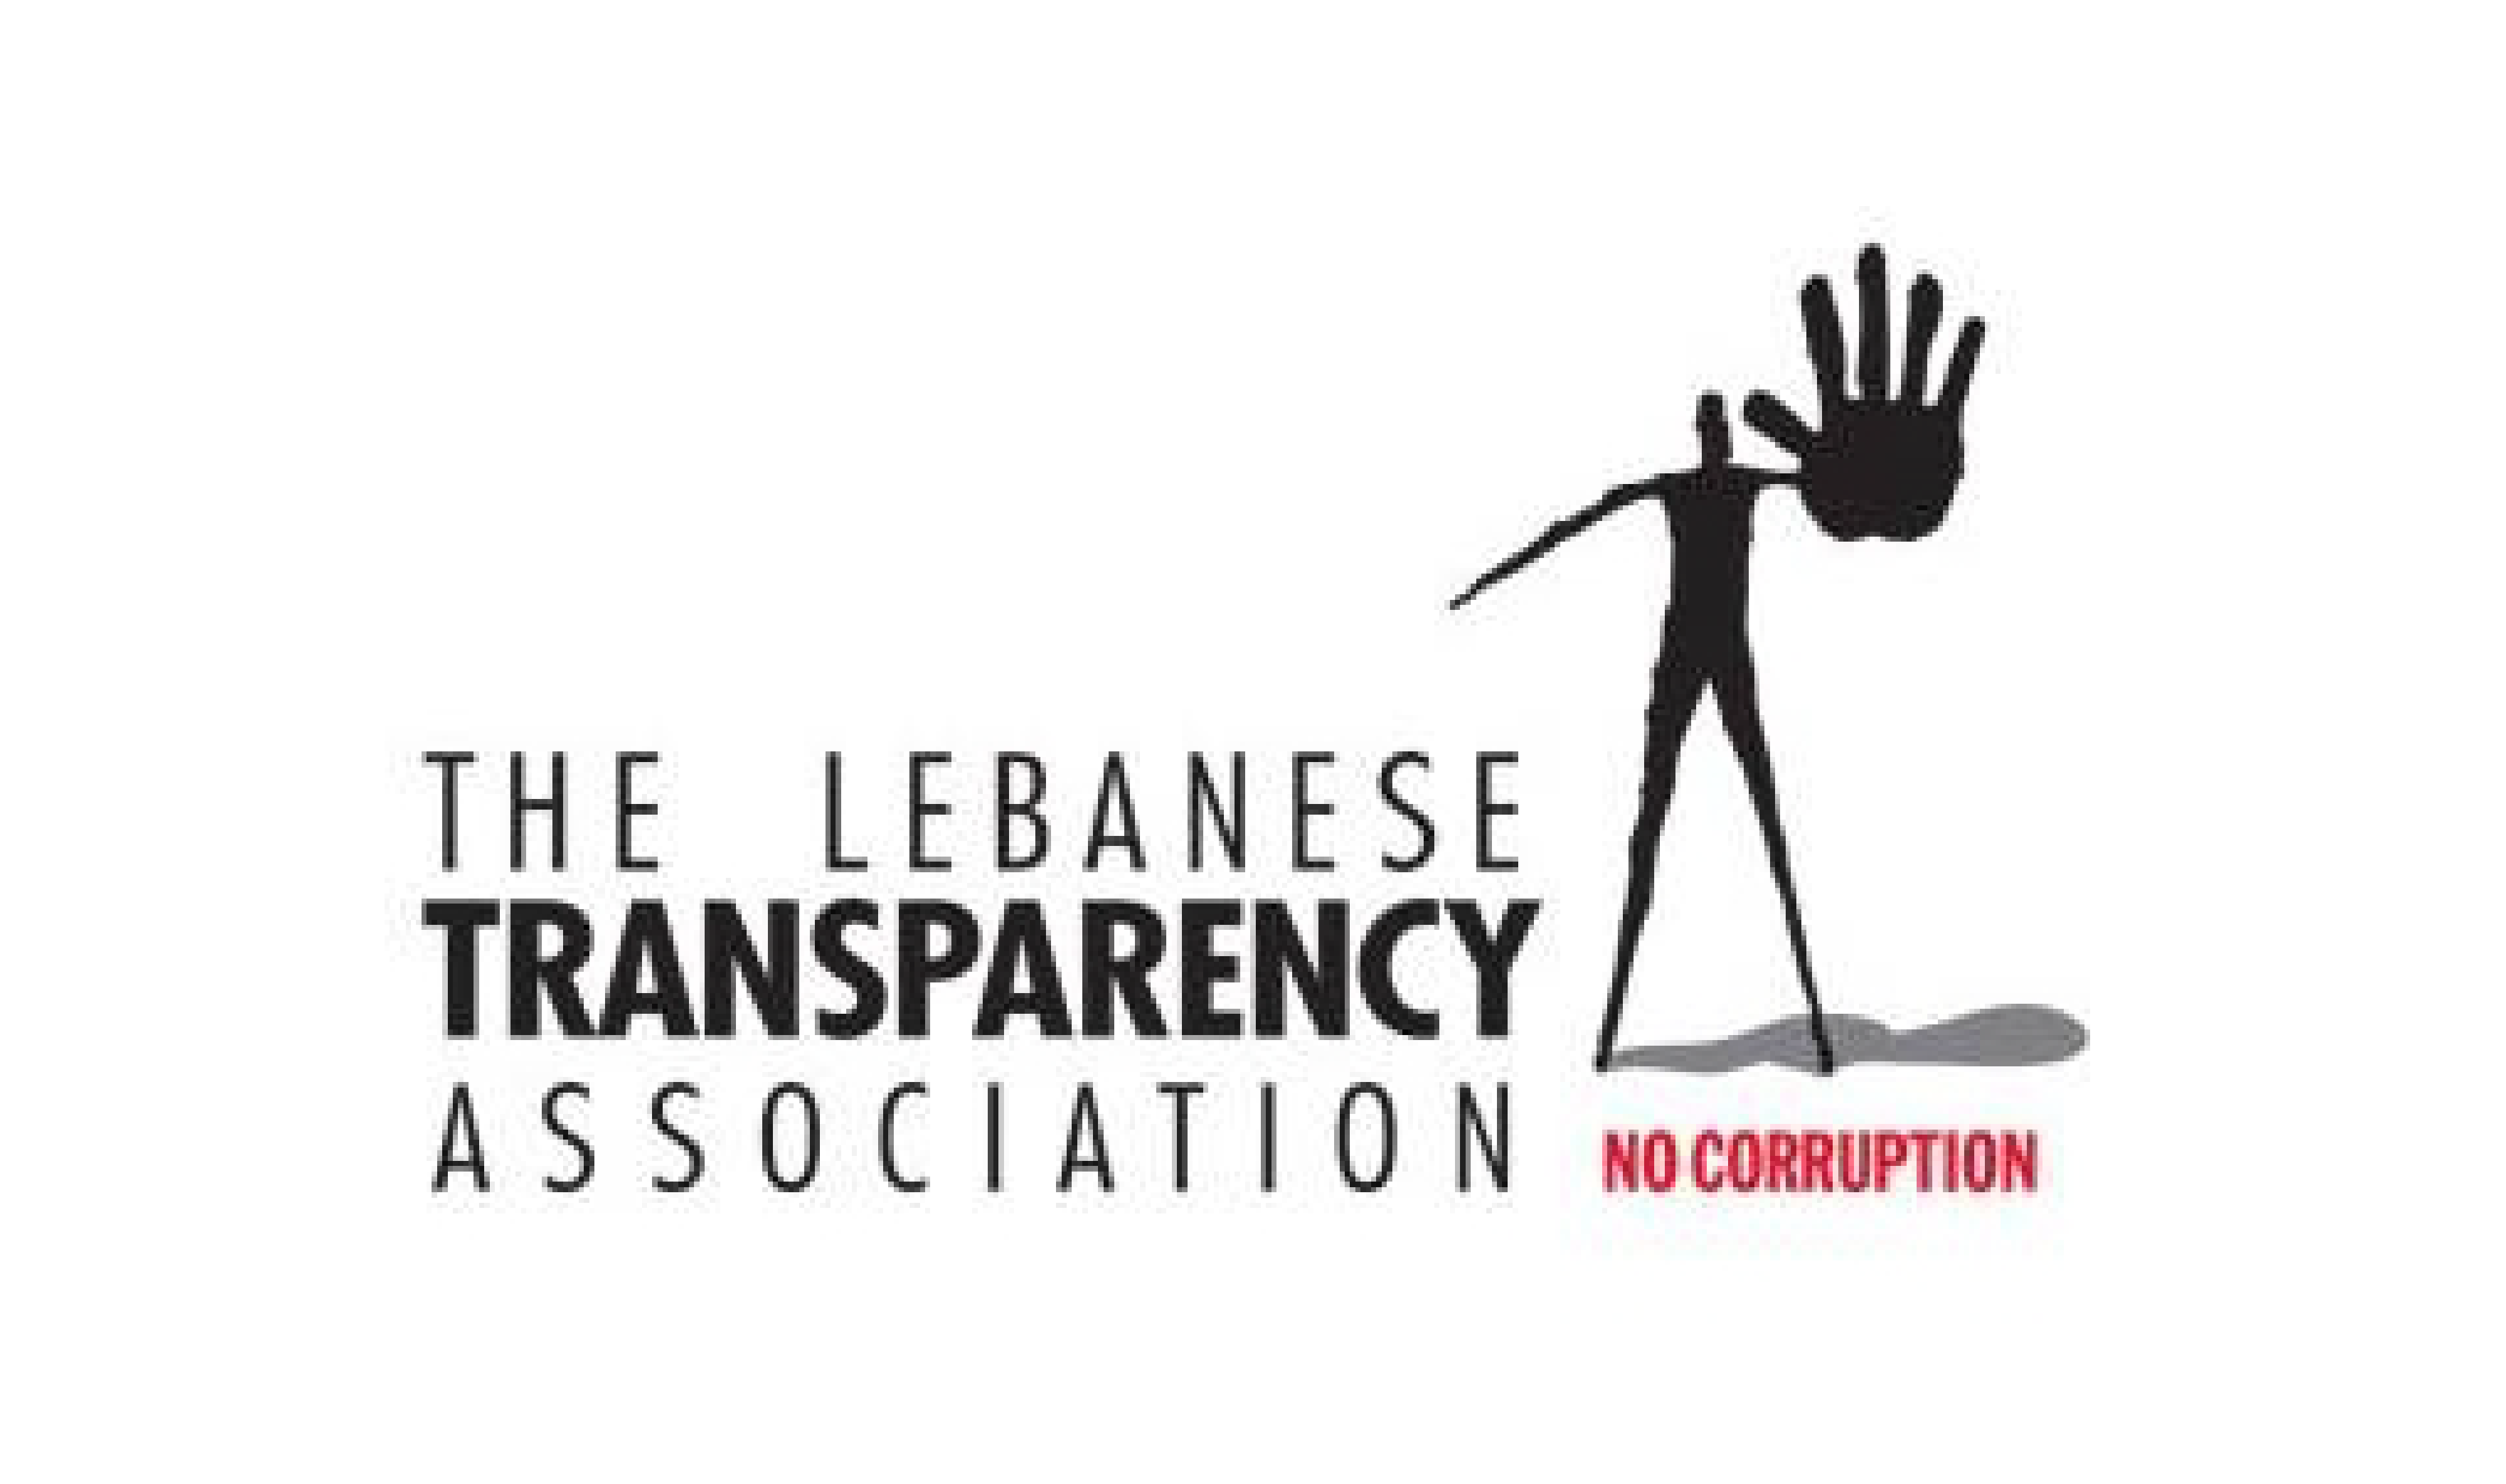 The Lebanese Transparency Association